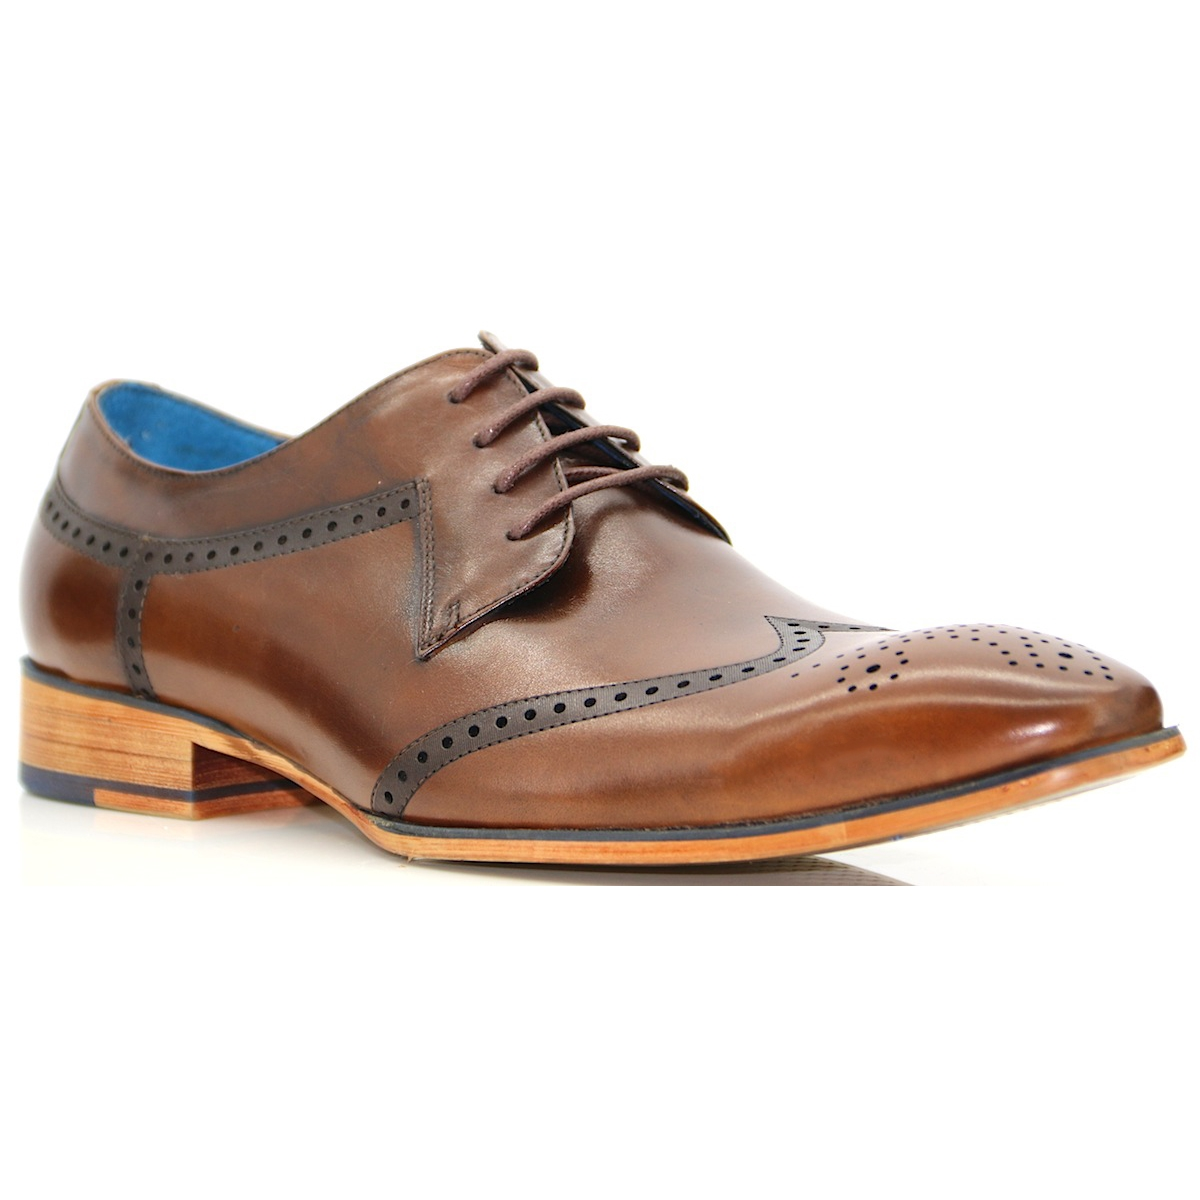 nyland paolo vandini brown brogue www panache shoes